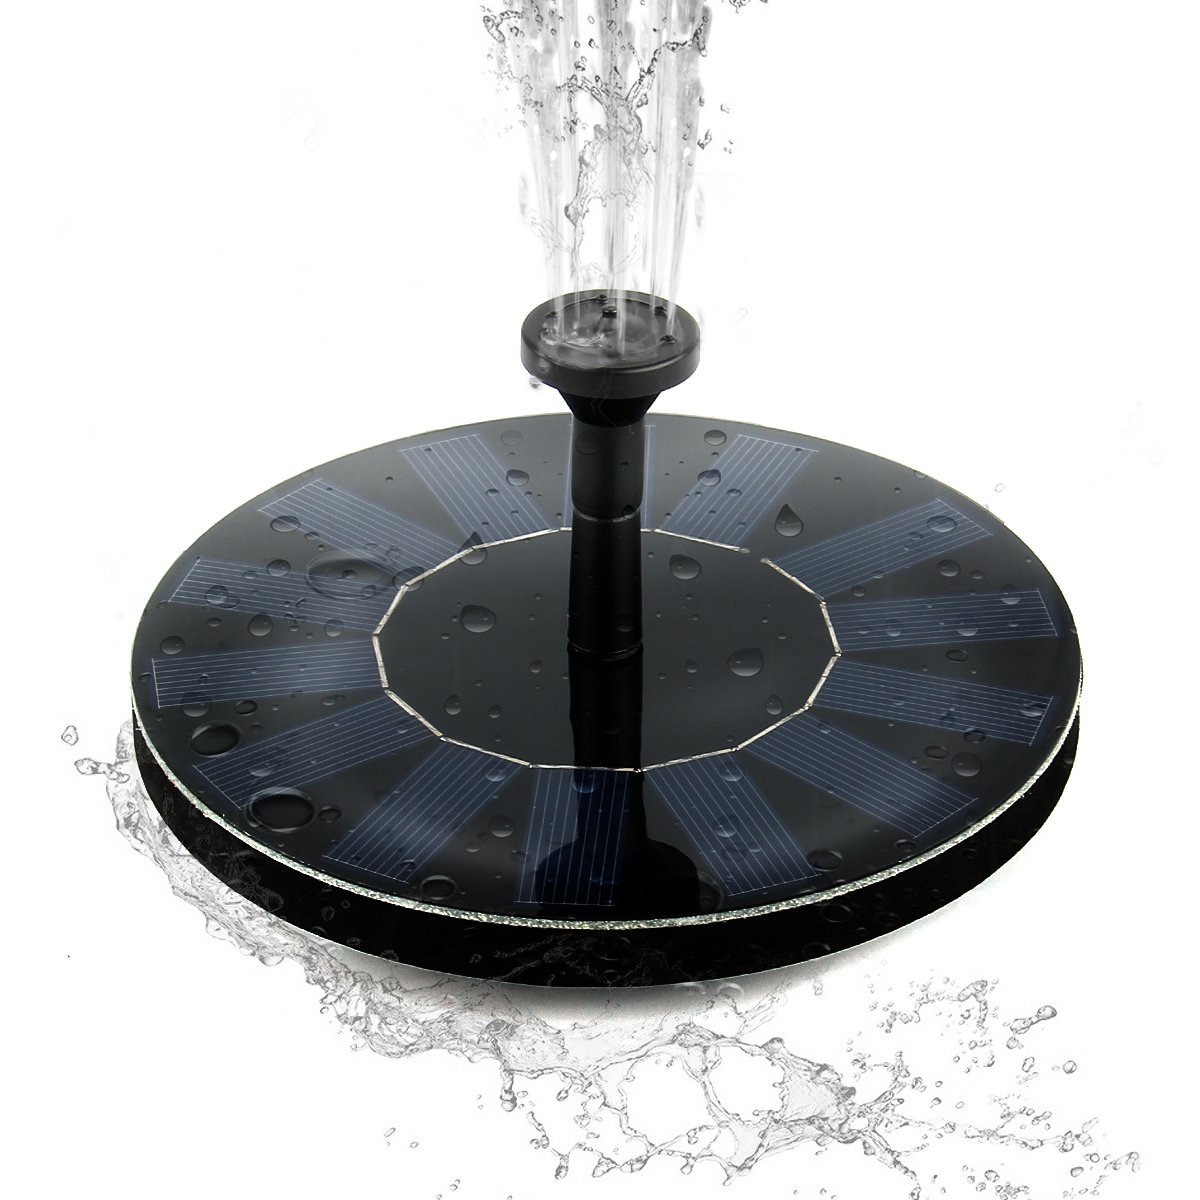 Solar Power Bird Bath Fountain,SOONHUA Solar Panel Water Floating Fountain Pump Kit for Bird Bath,Fish Tank,Small Pond,Garden Decoration